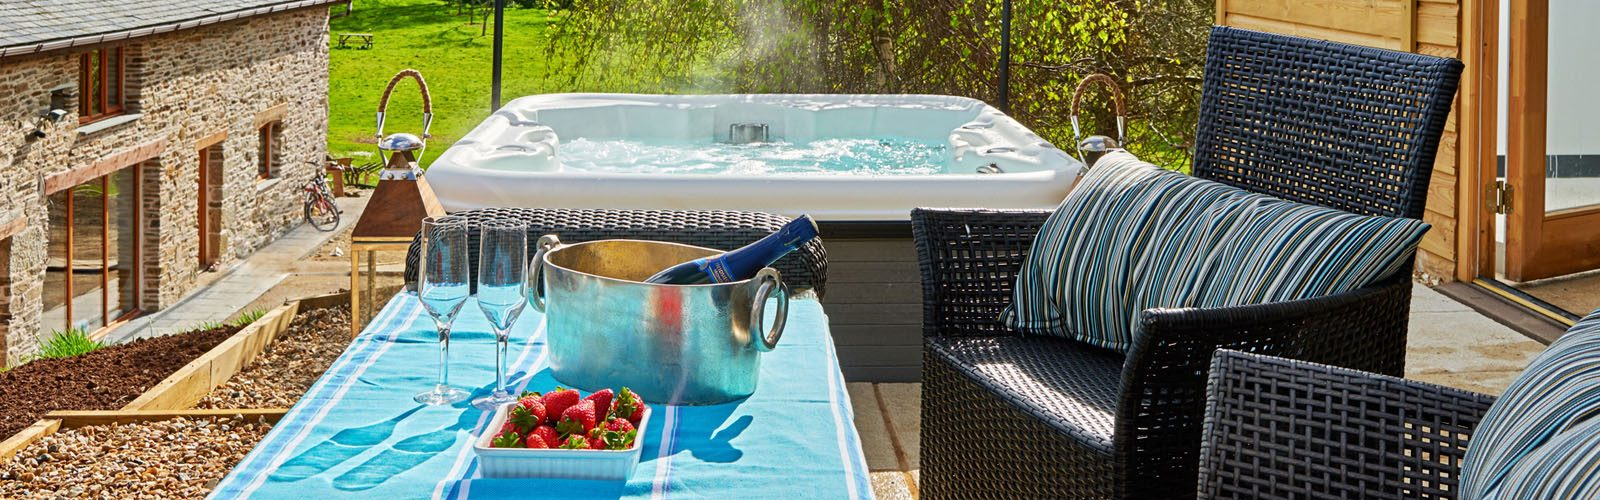 Cornwall Holiday Home with a Hot Tub outside.